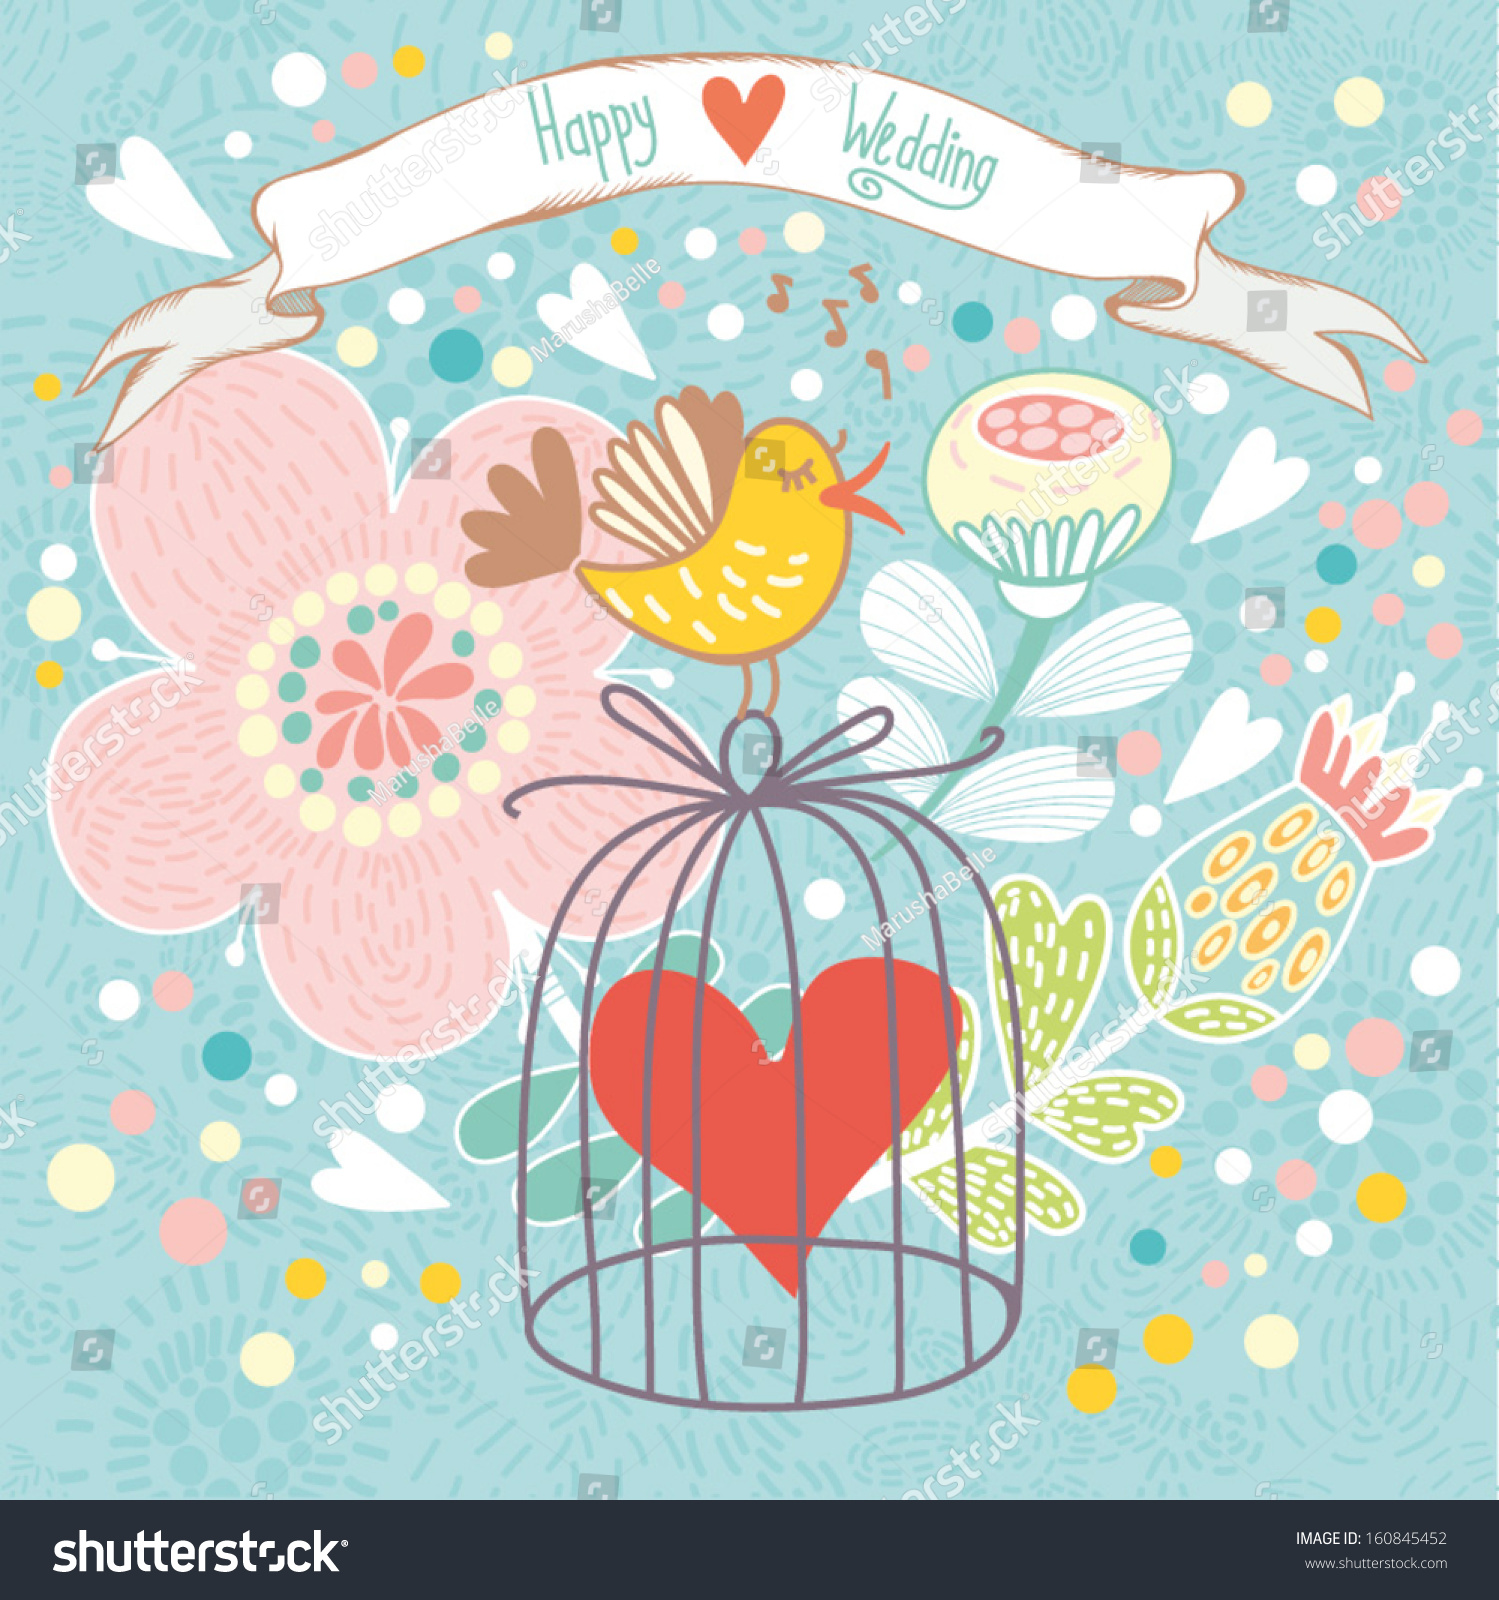 Romantic vector seamless background greeting card wallpaper vector art -  Vectors Illustrations Footage Music Abstract Romantic Card In Cute Colors Bright Background With Bird Cage Flowers